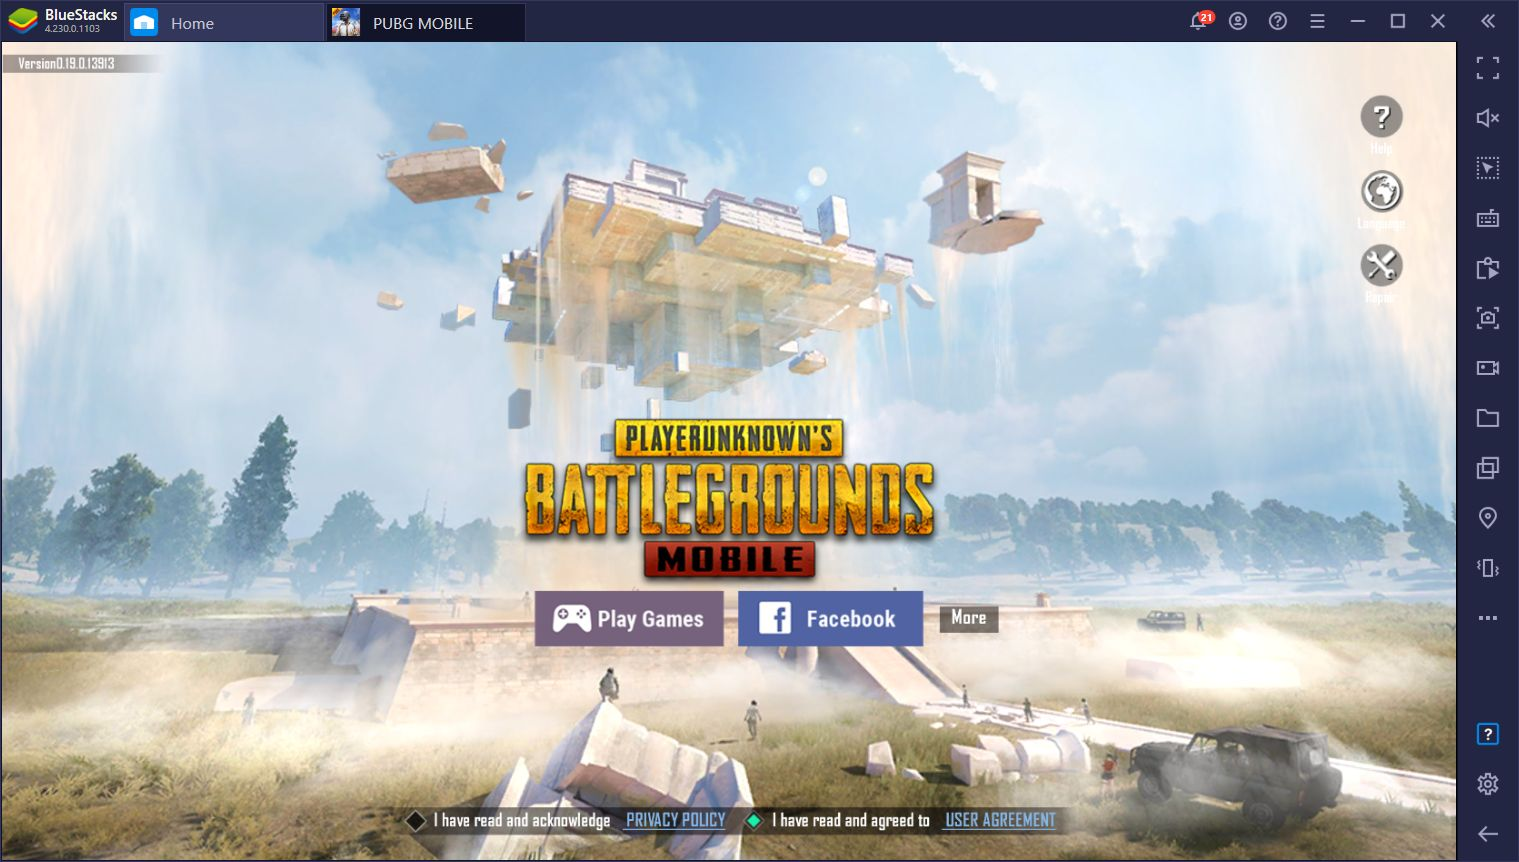 PUBG Mobile 1.0 Update Brings Significant Performance Upgrades in Anticipation of the PUBG Mobile Global Championship